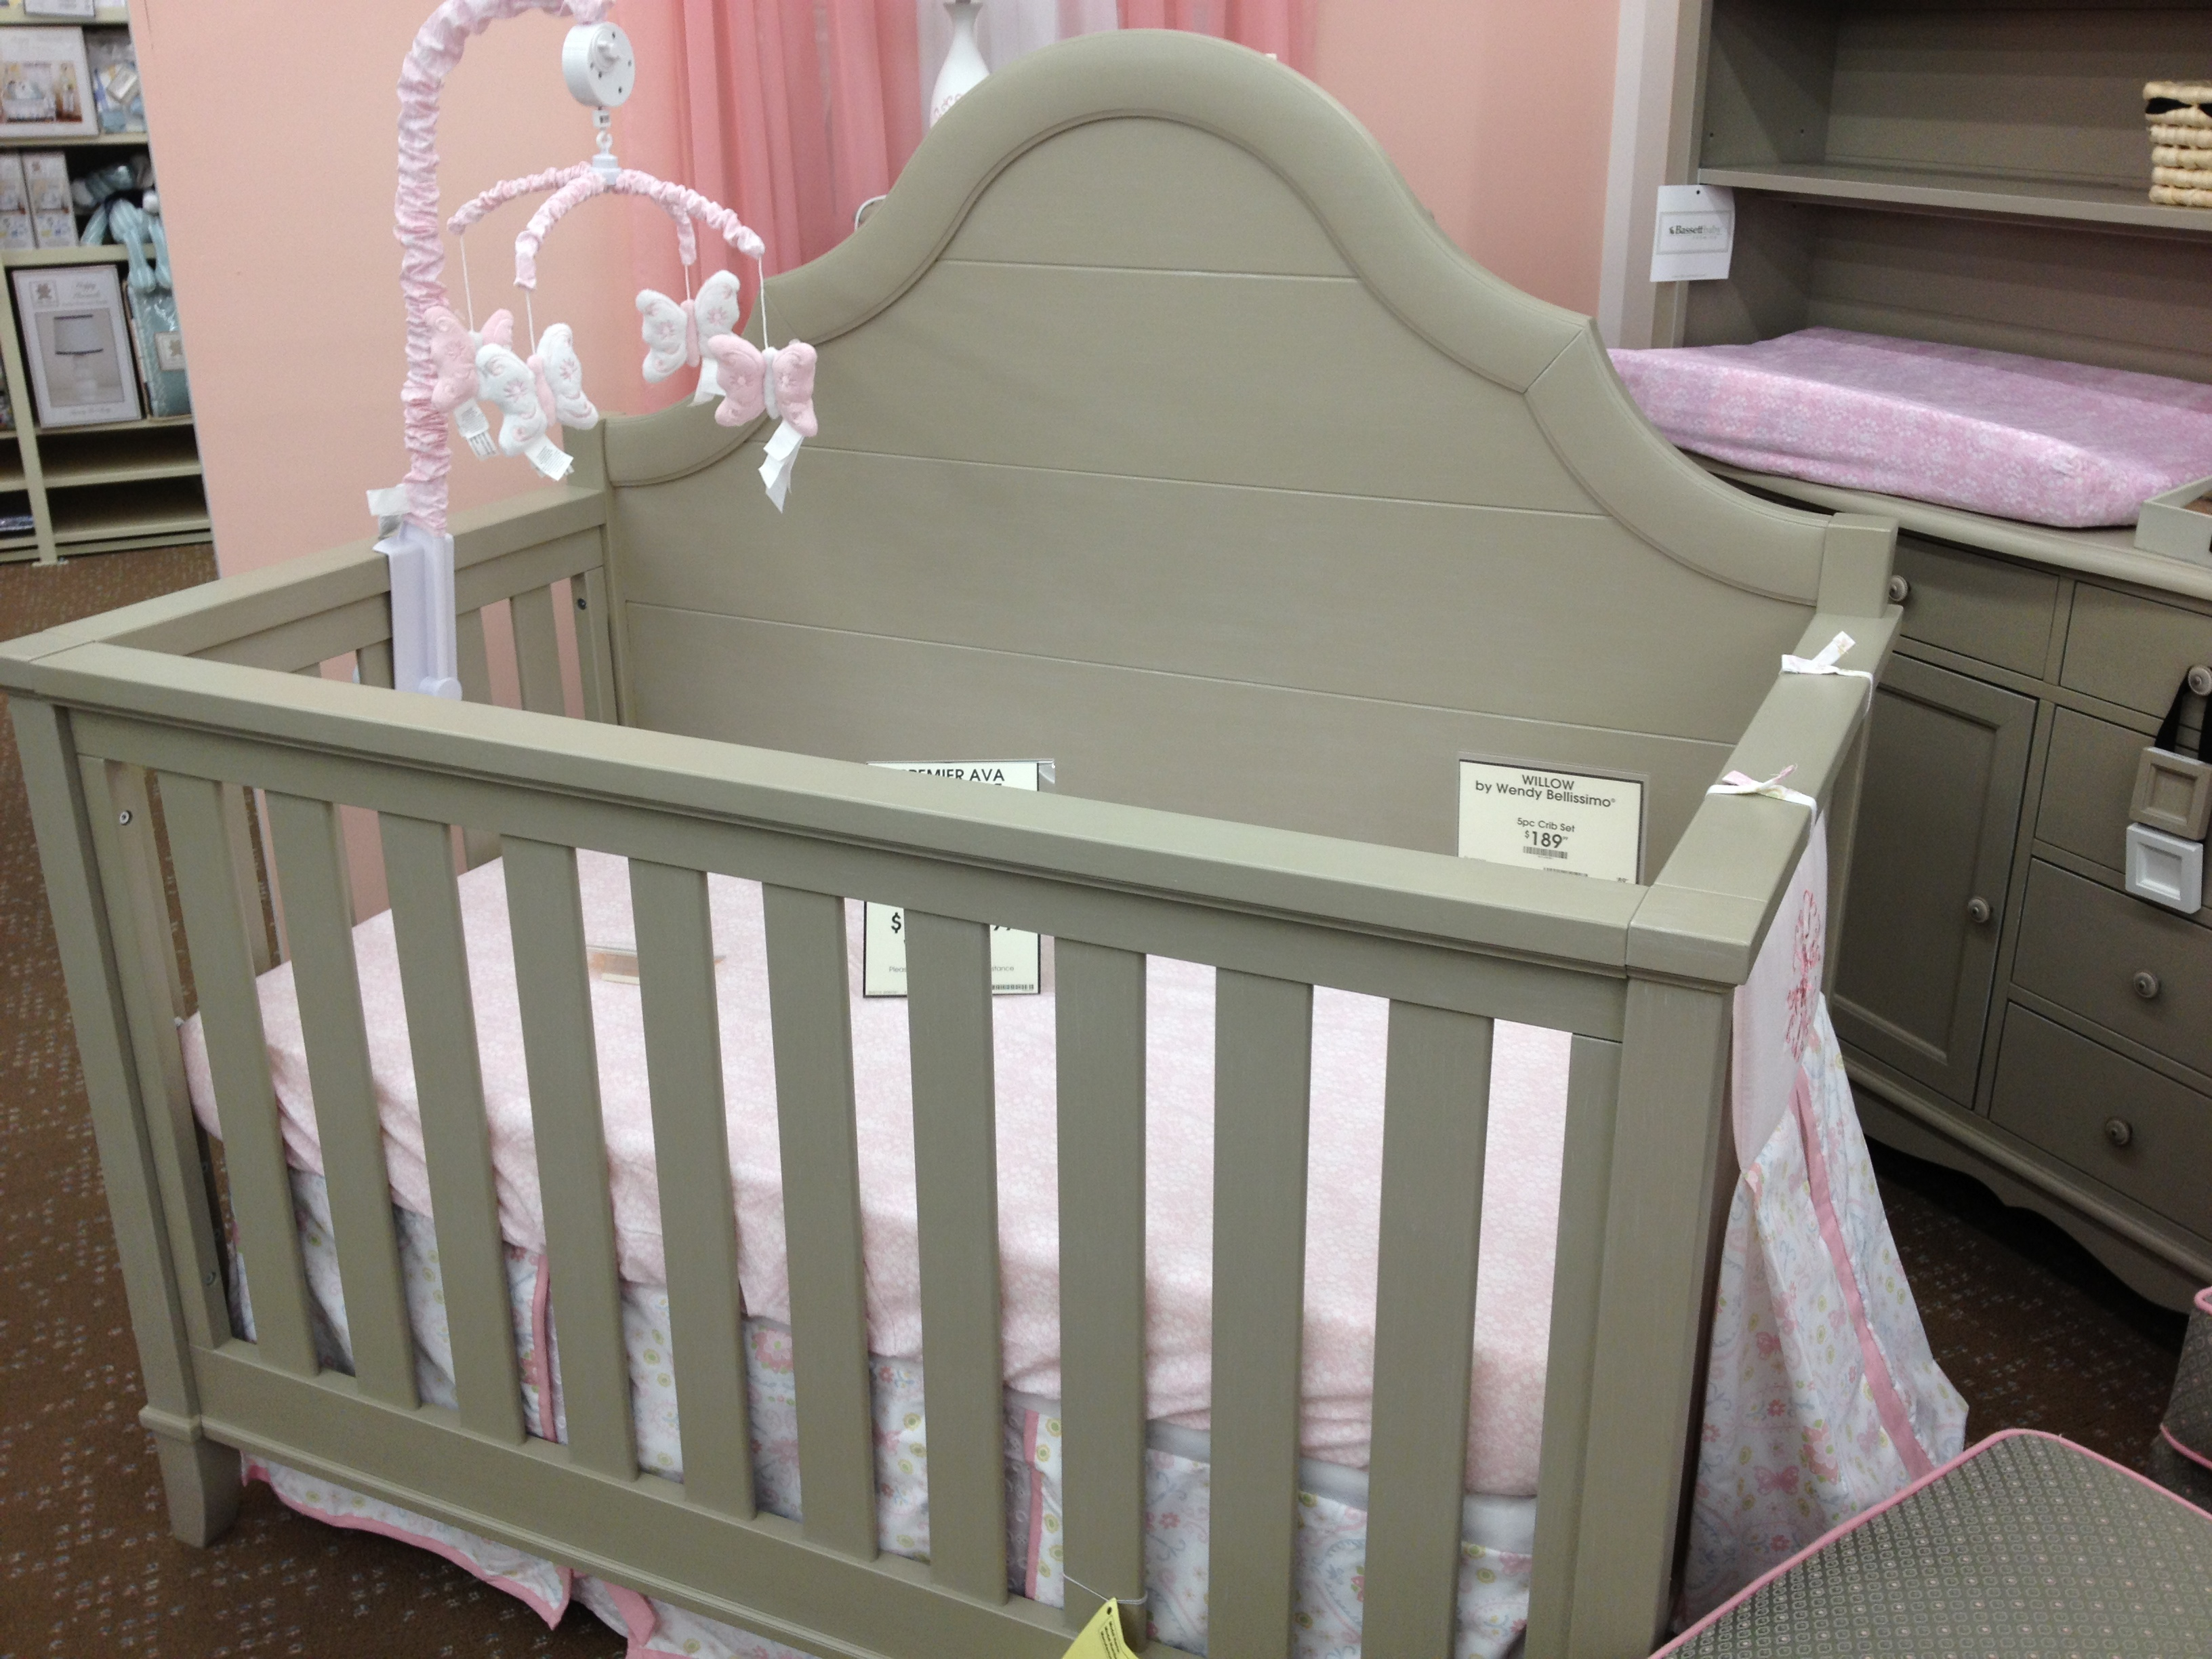 Bassett Baby Crib | Babies R Us Rocking Chairs | Crib Tent Walmart & Furniture: Convertible Cribs | Bassett Cribs | Bassett Baby Crib